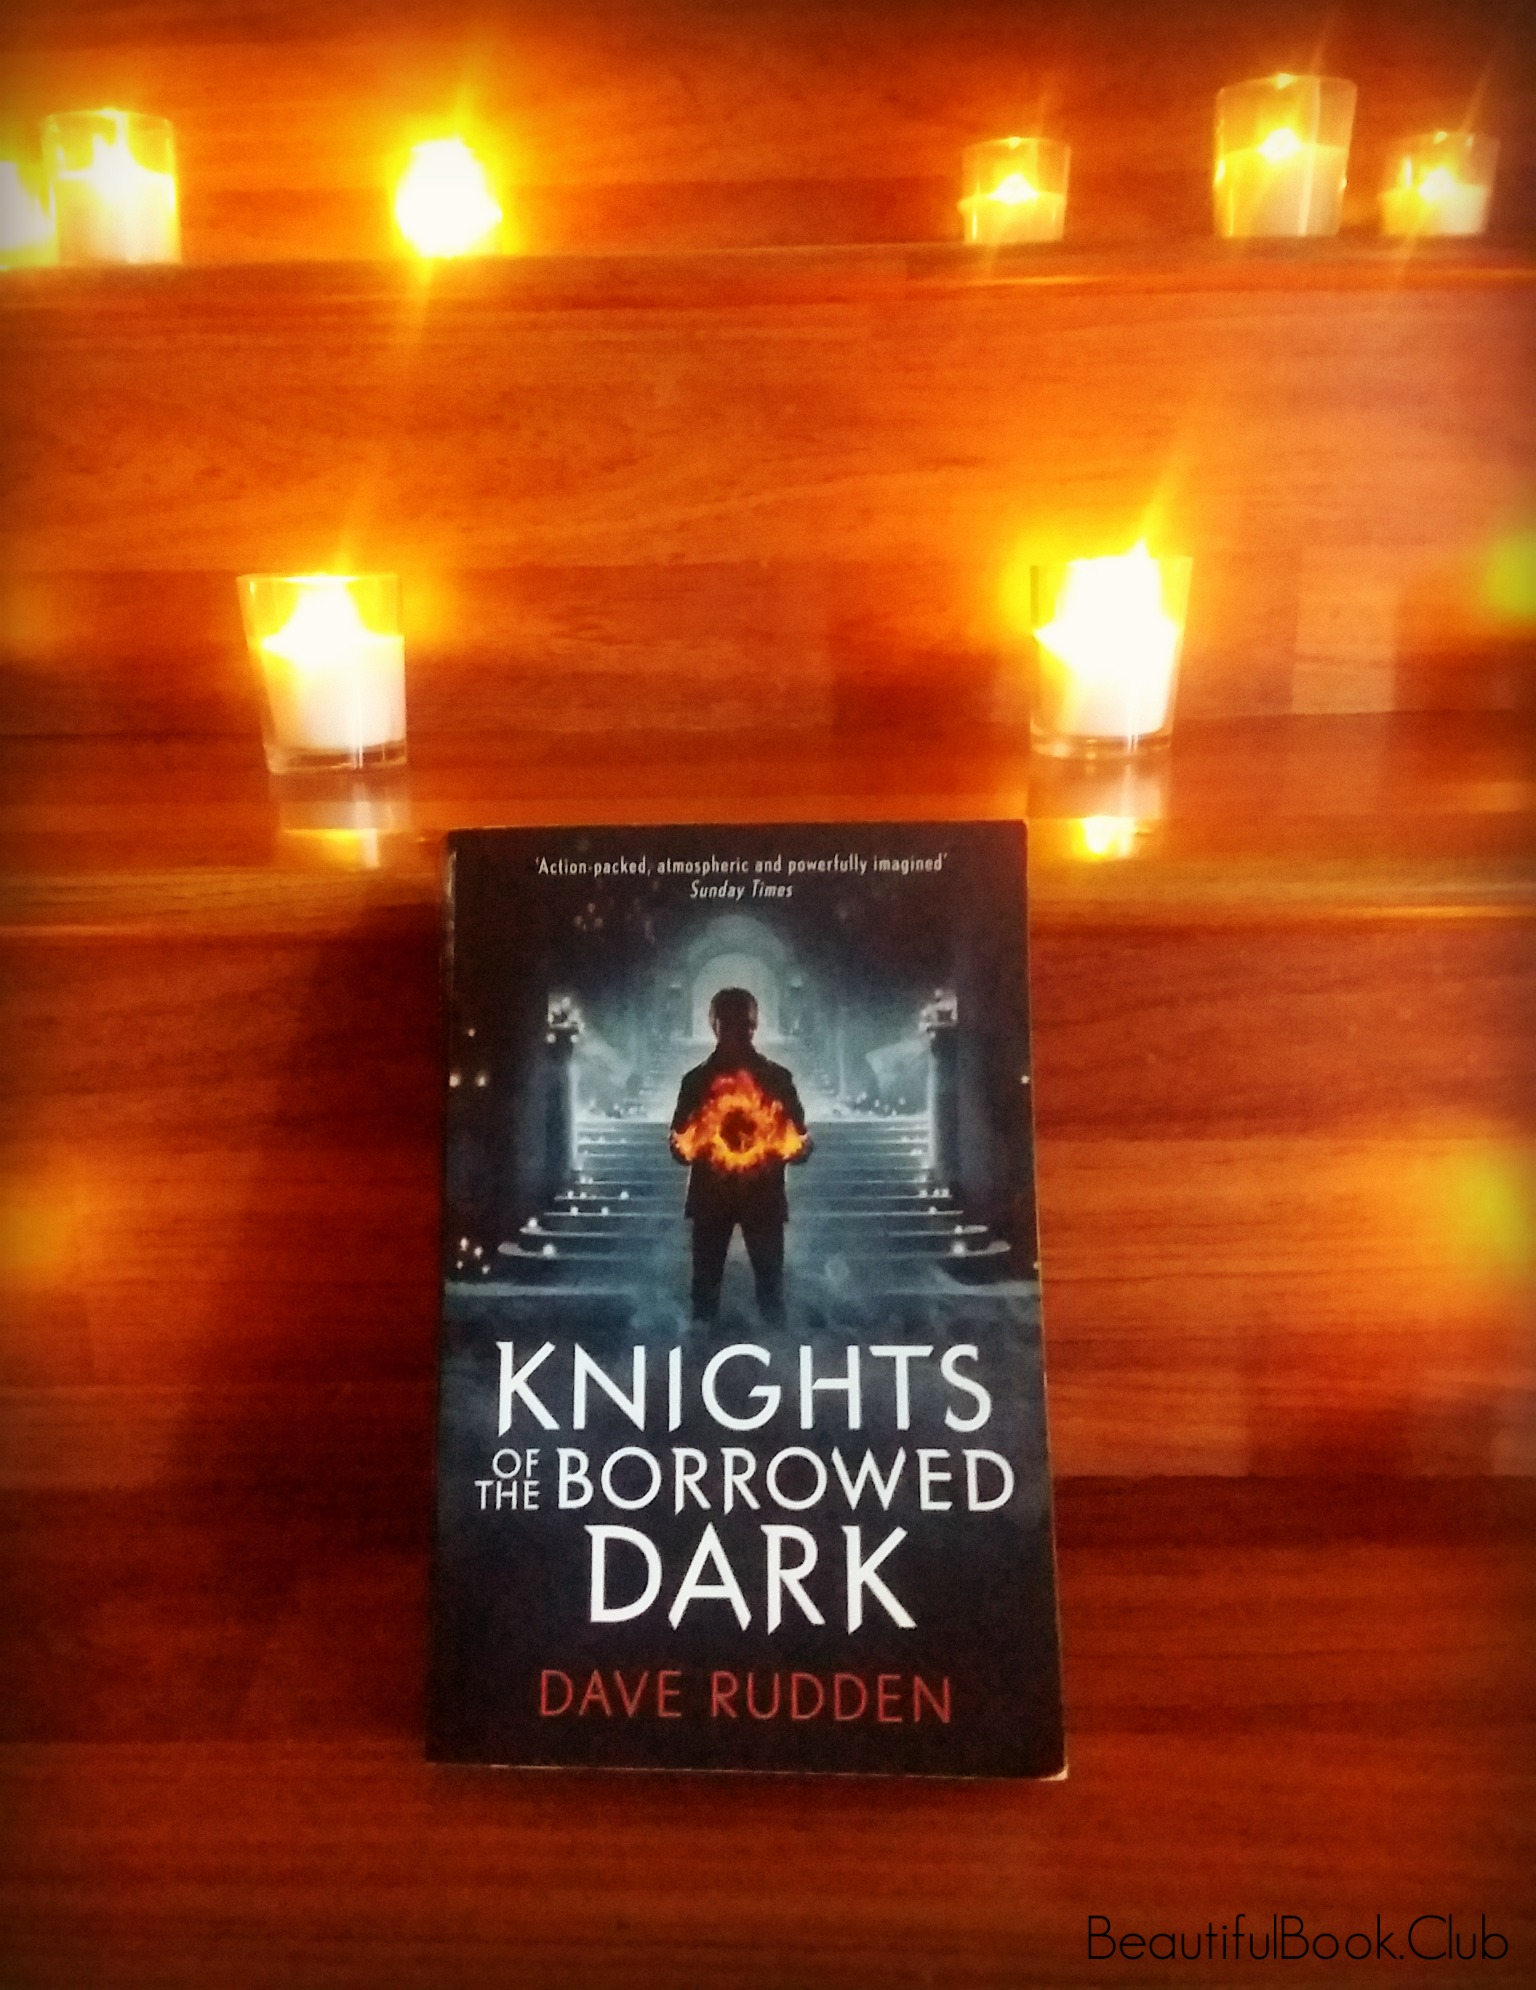 Knights of the Borrowed Dark by Dave Rudden front cover with candles